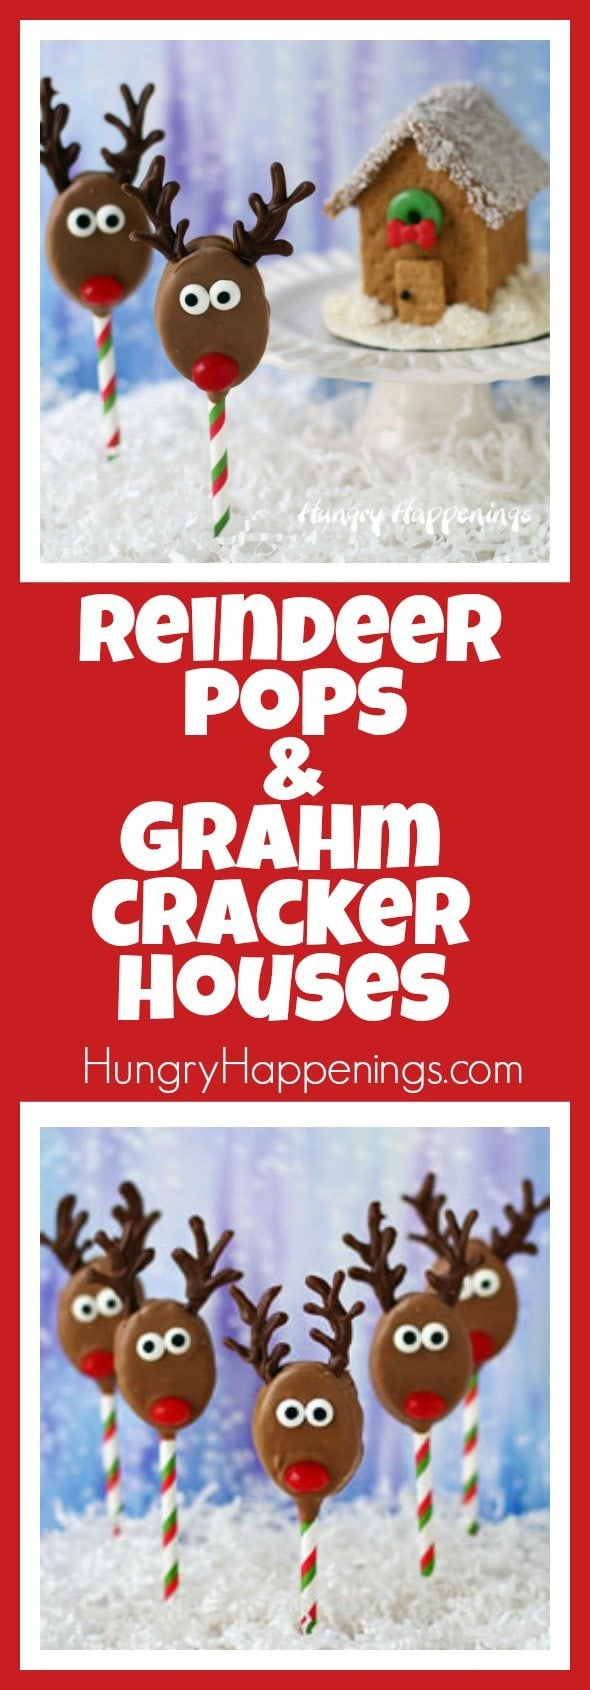 This weekend I had a blast working in the kitchen creating these festive Reindeer Pops and Graham Cracker Houses using Honey Maid Graham Crackers and Skippy Peanut Butter as part of a sponsored post for Collective Bias on behalf of it's advertisers. #PBandG  #CollectiveBias